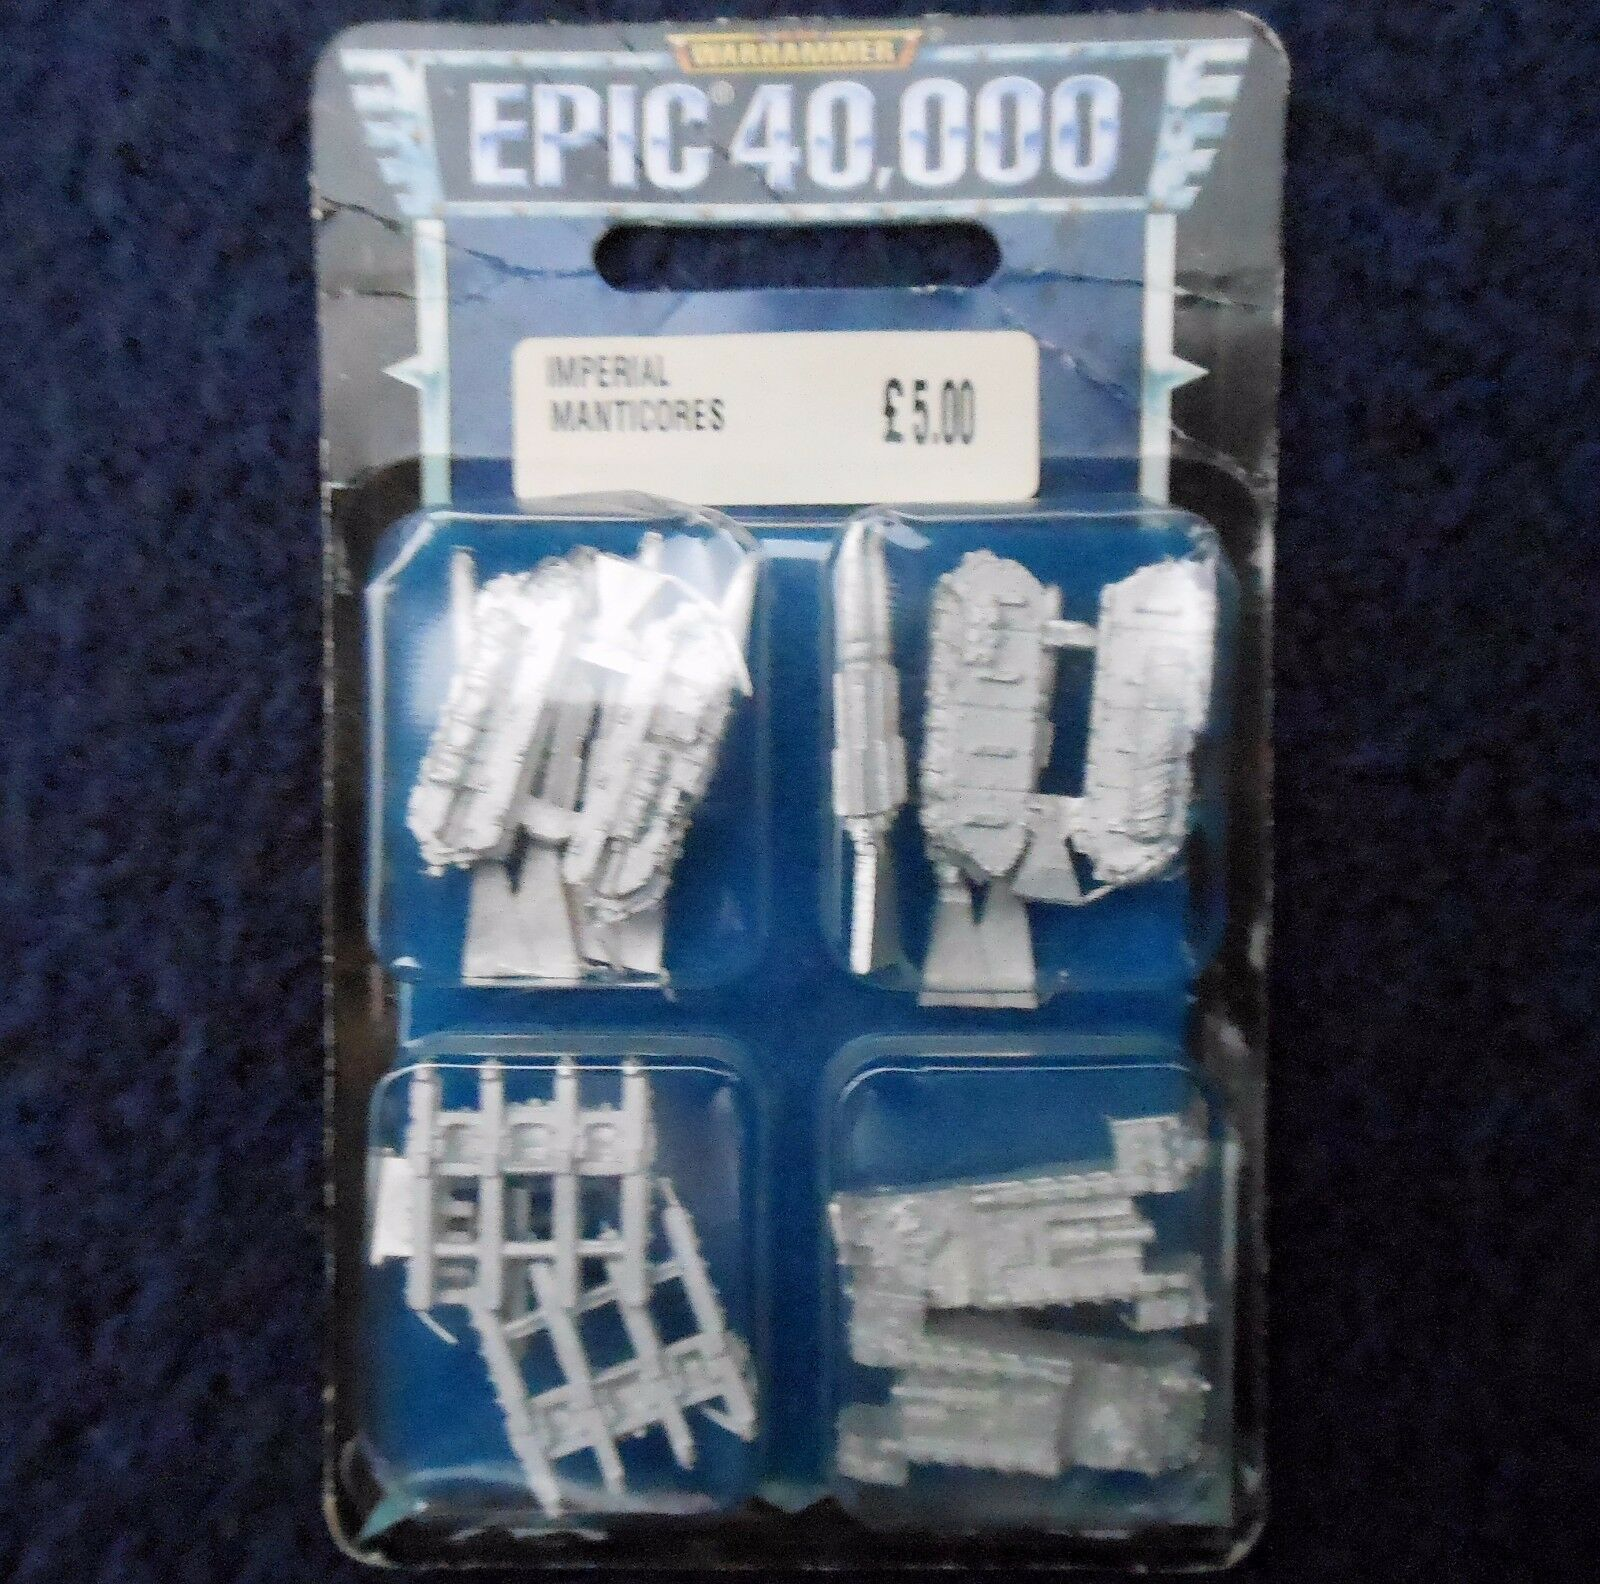 1999 Epic Imperial Guard Manticore Multi Launcher Citadel 6mm 40K Warhammer MIB